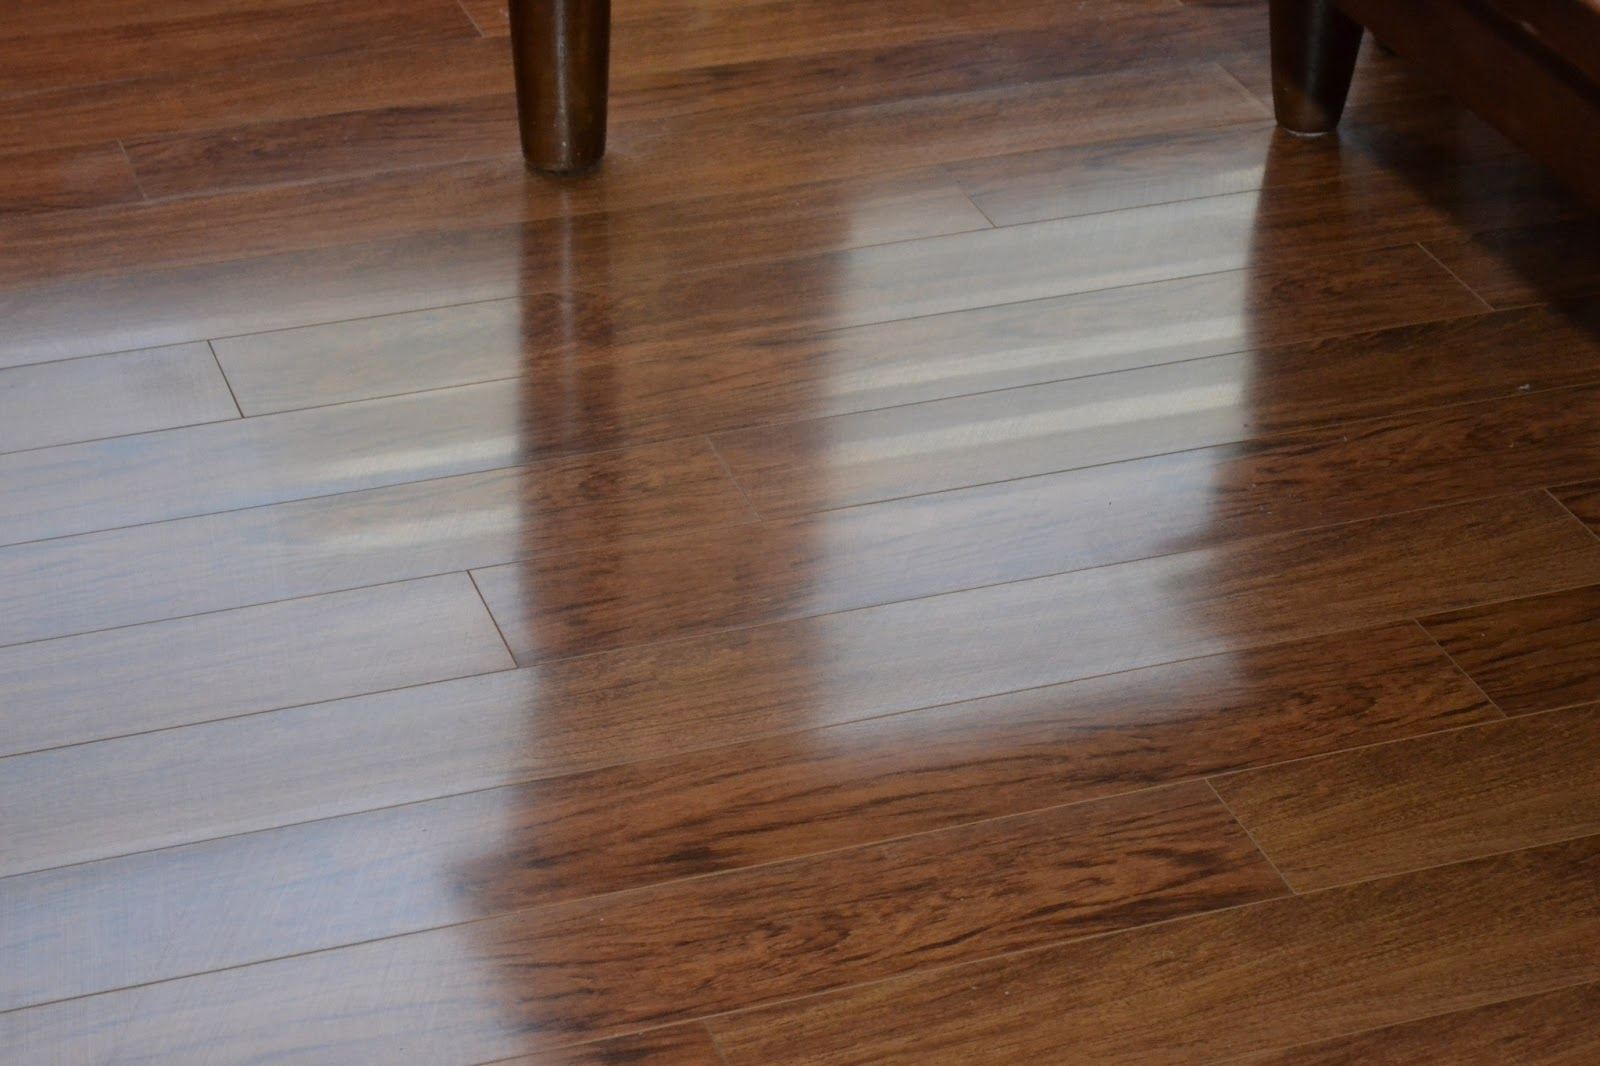 After One Good Mopping With My Swifter On Dry And My New Floor Cleaner In A  Spray Bottle, I Am In Business With Nice Floors Again!